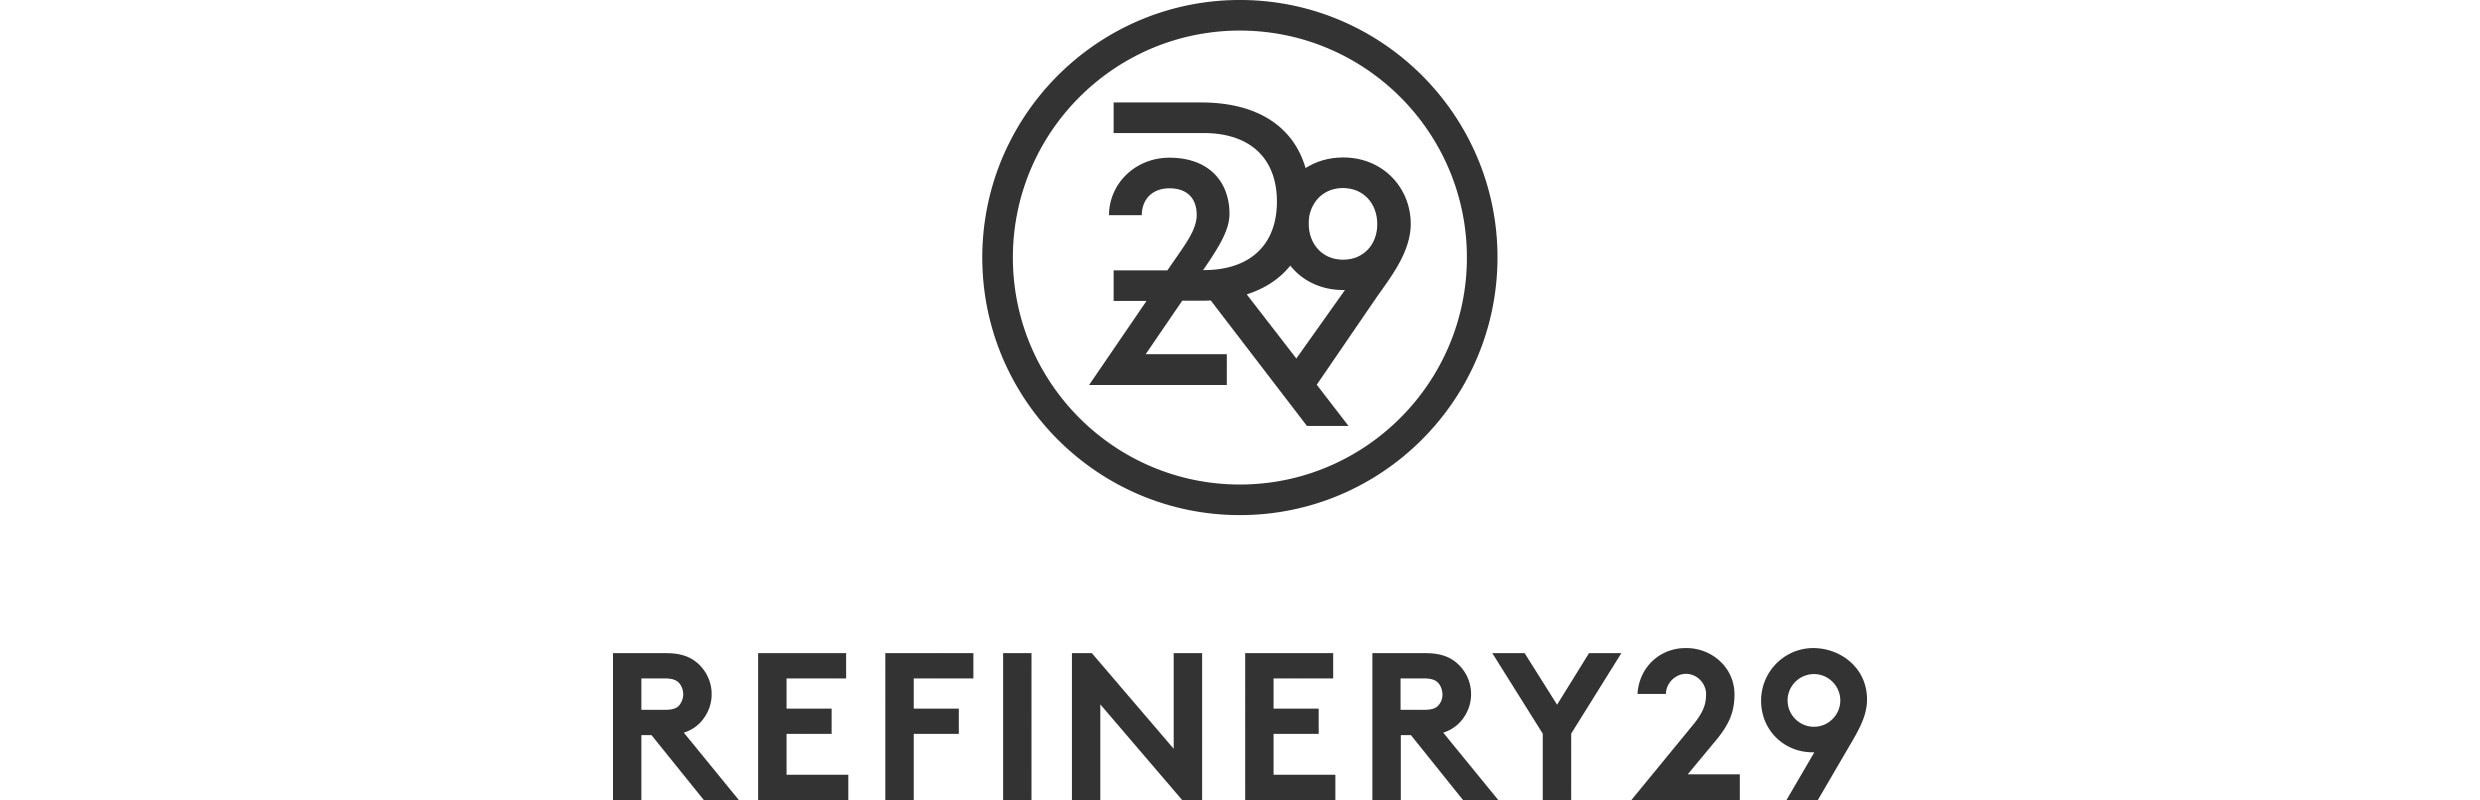 Refinery29 selected